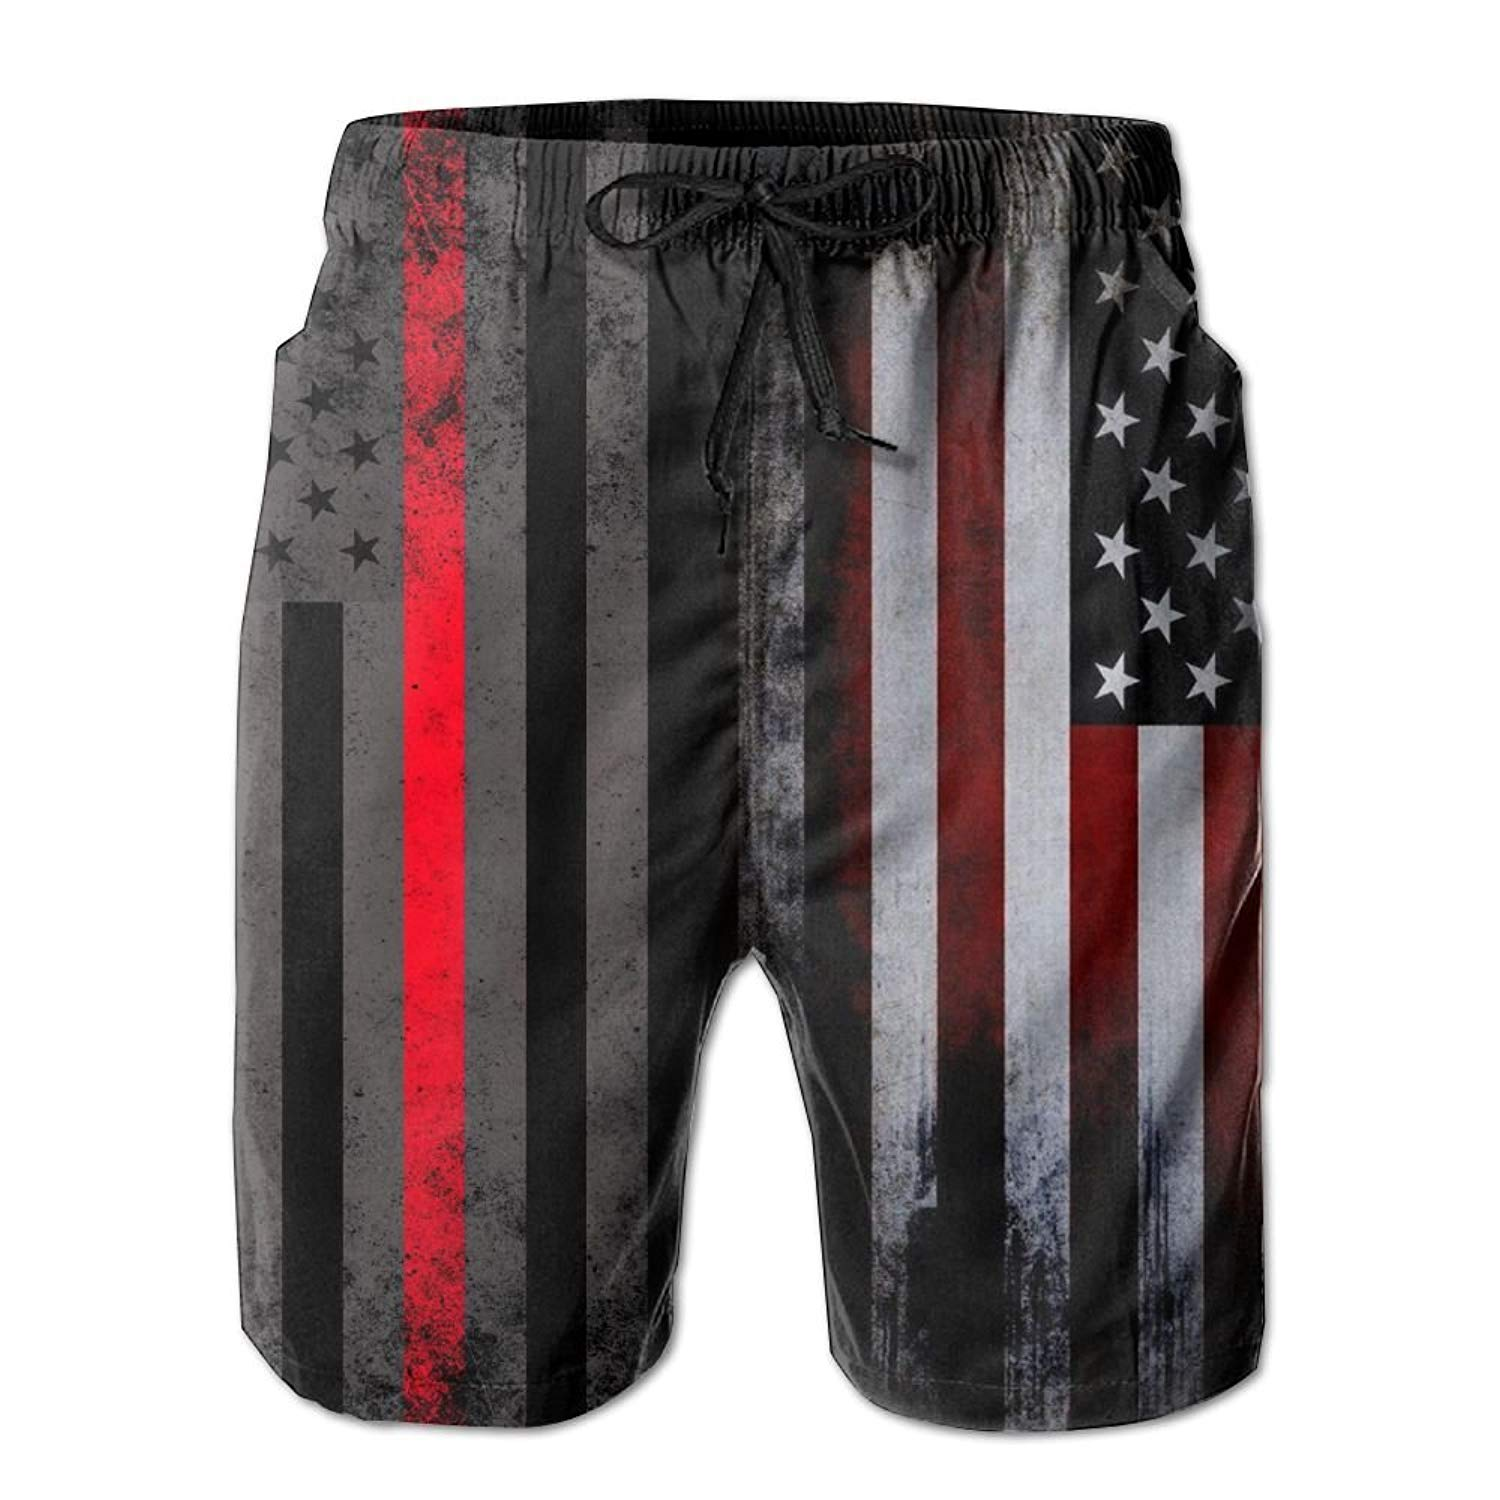 f5a3febadb Get Quotations · Men's Summer Vintage American Thin Red Line Flag  Firefighter Quick Dry Beach Shorts Swim Trunks Board